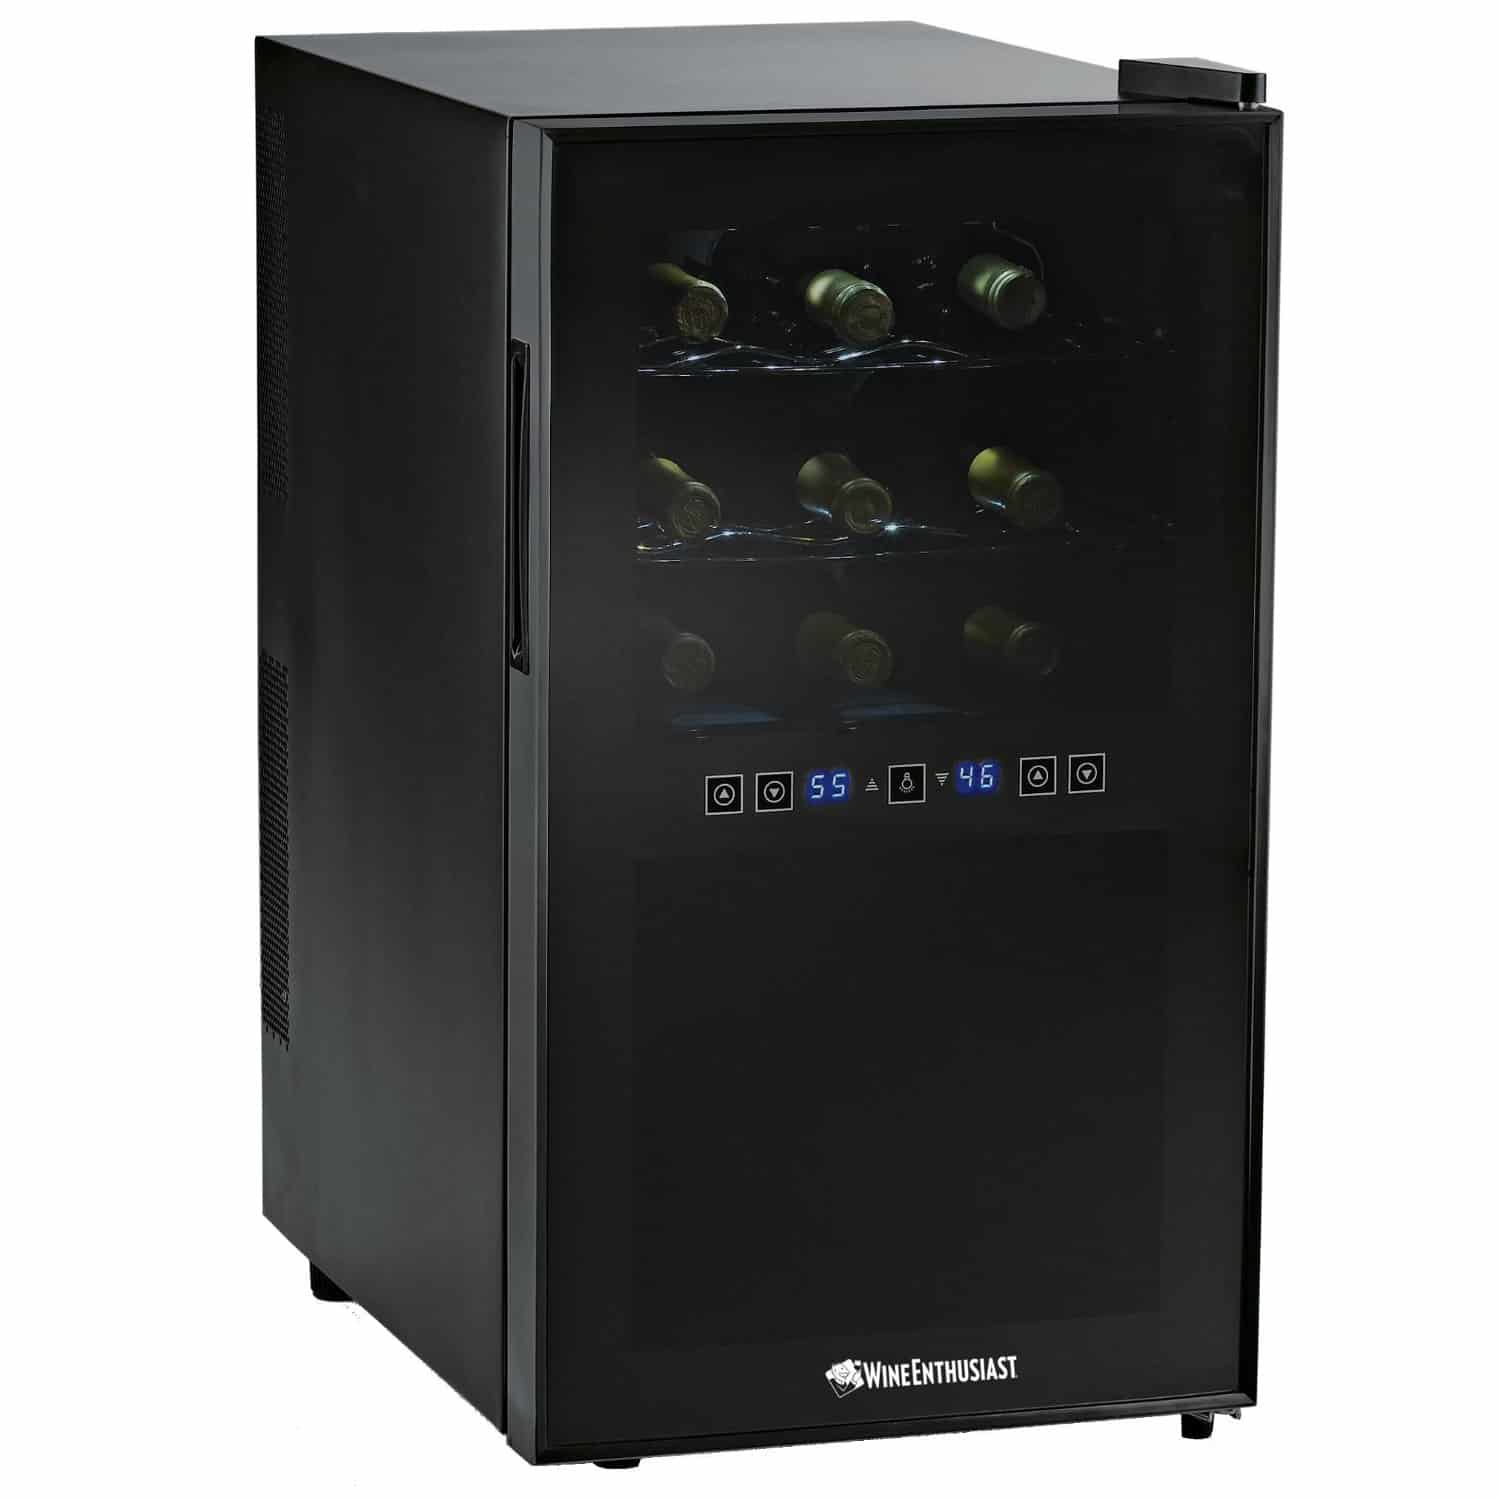 Best Wine Refrigerator: Coolers Reviews & Consumer Reports 1